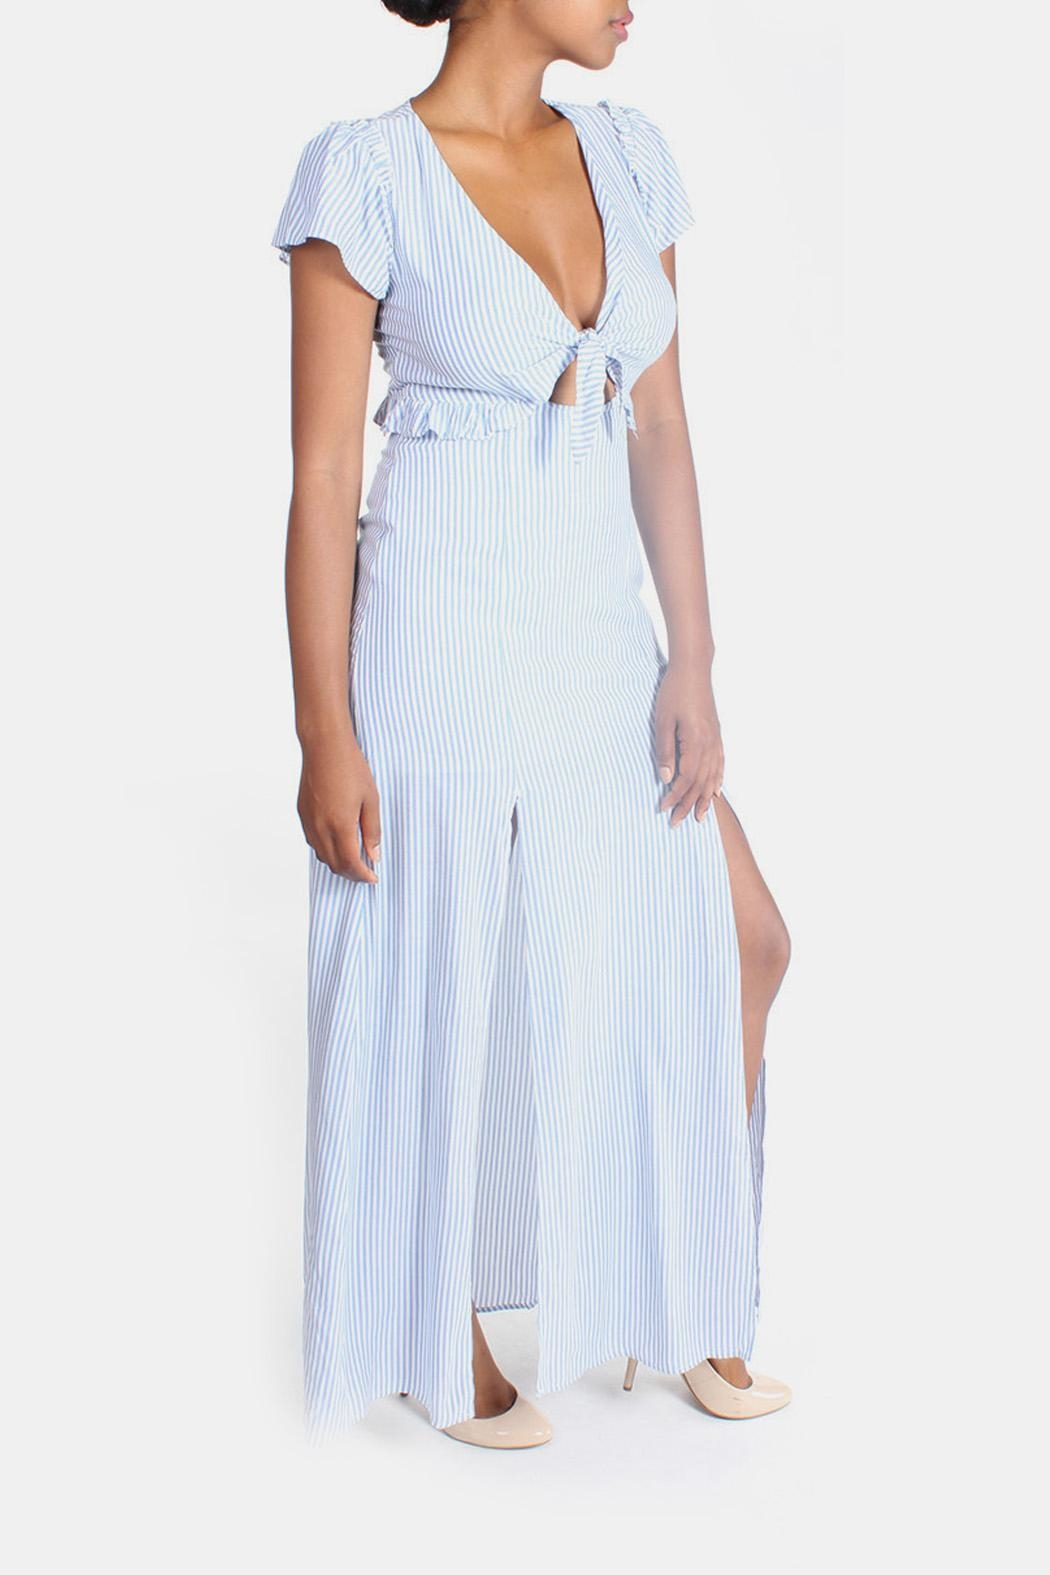 Cotton Candy LA Harbor Cut Out Maxi - Side Cropped Image